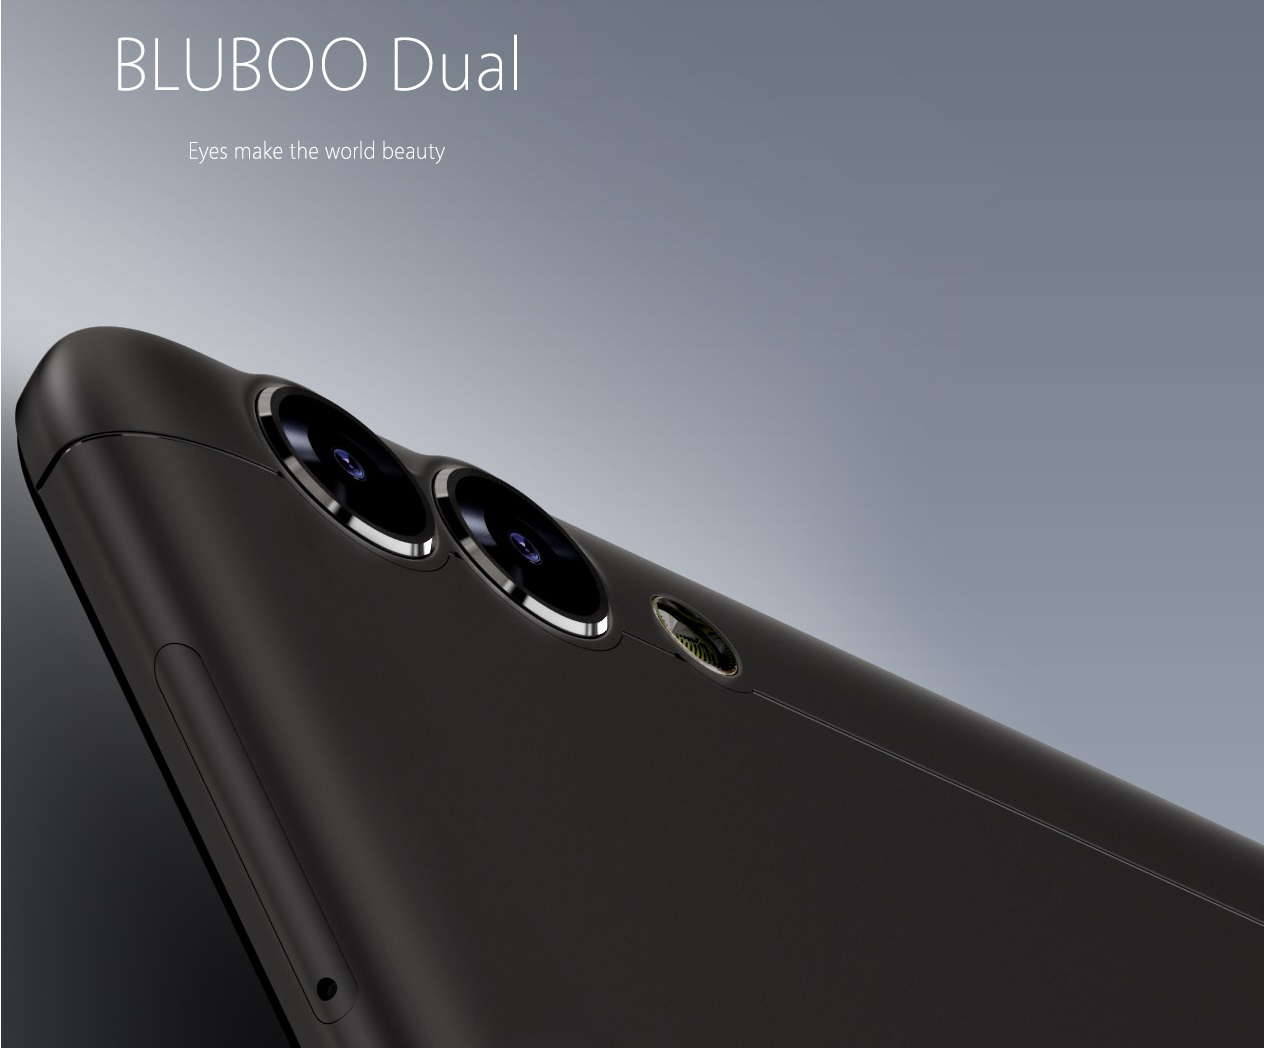 bluboo dual in nepal with price and specs